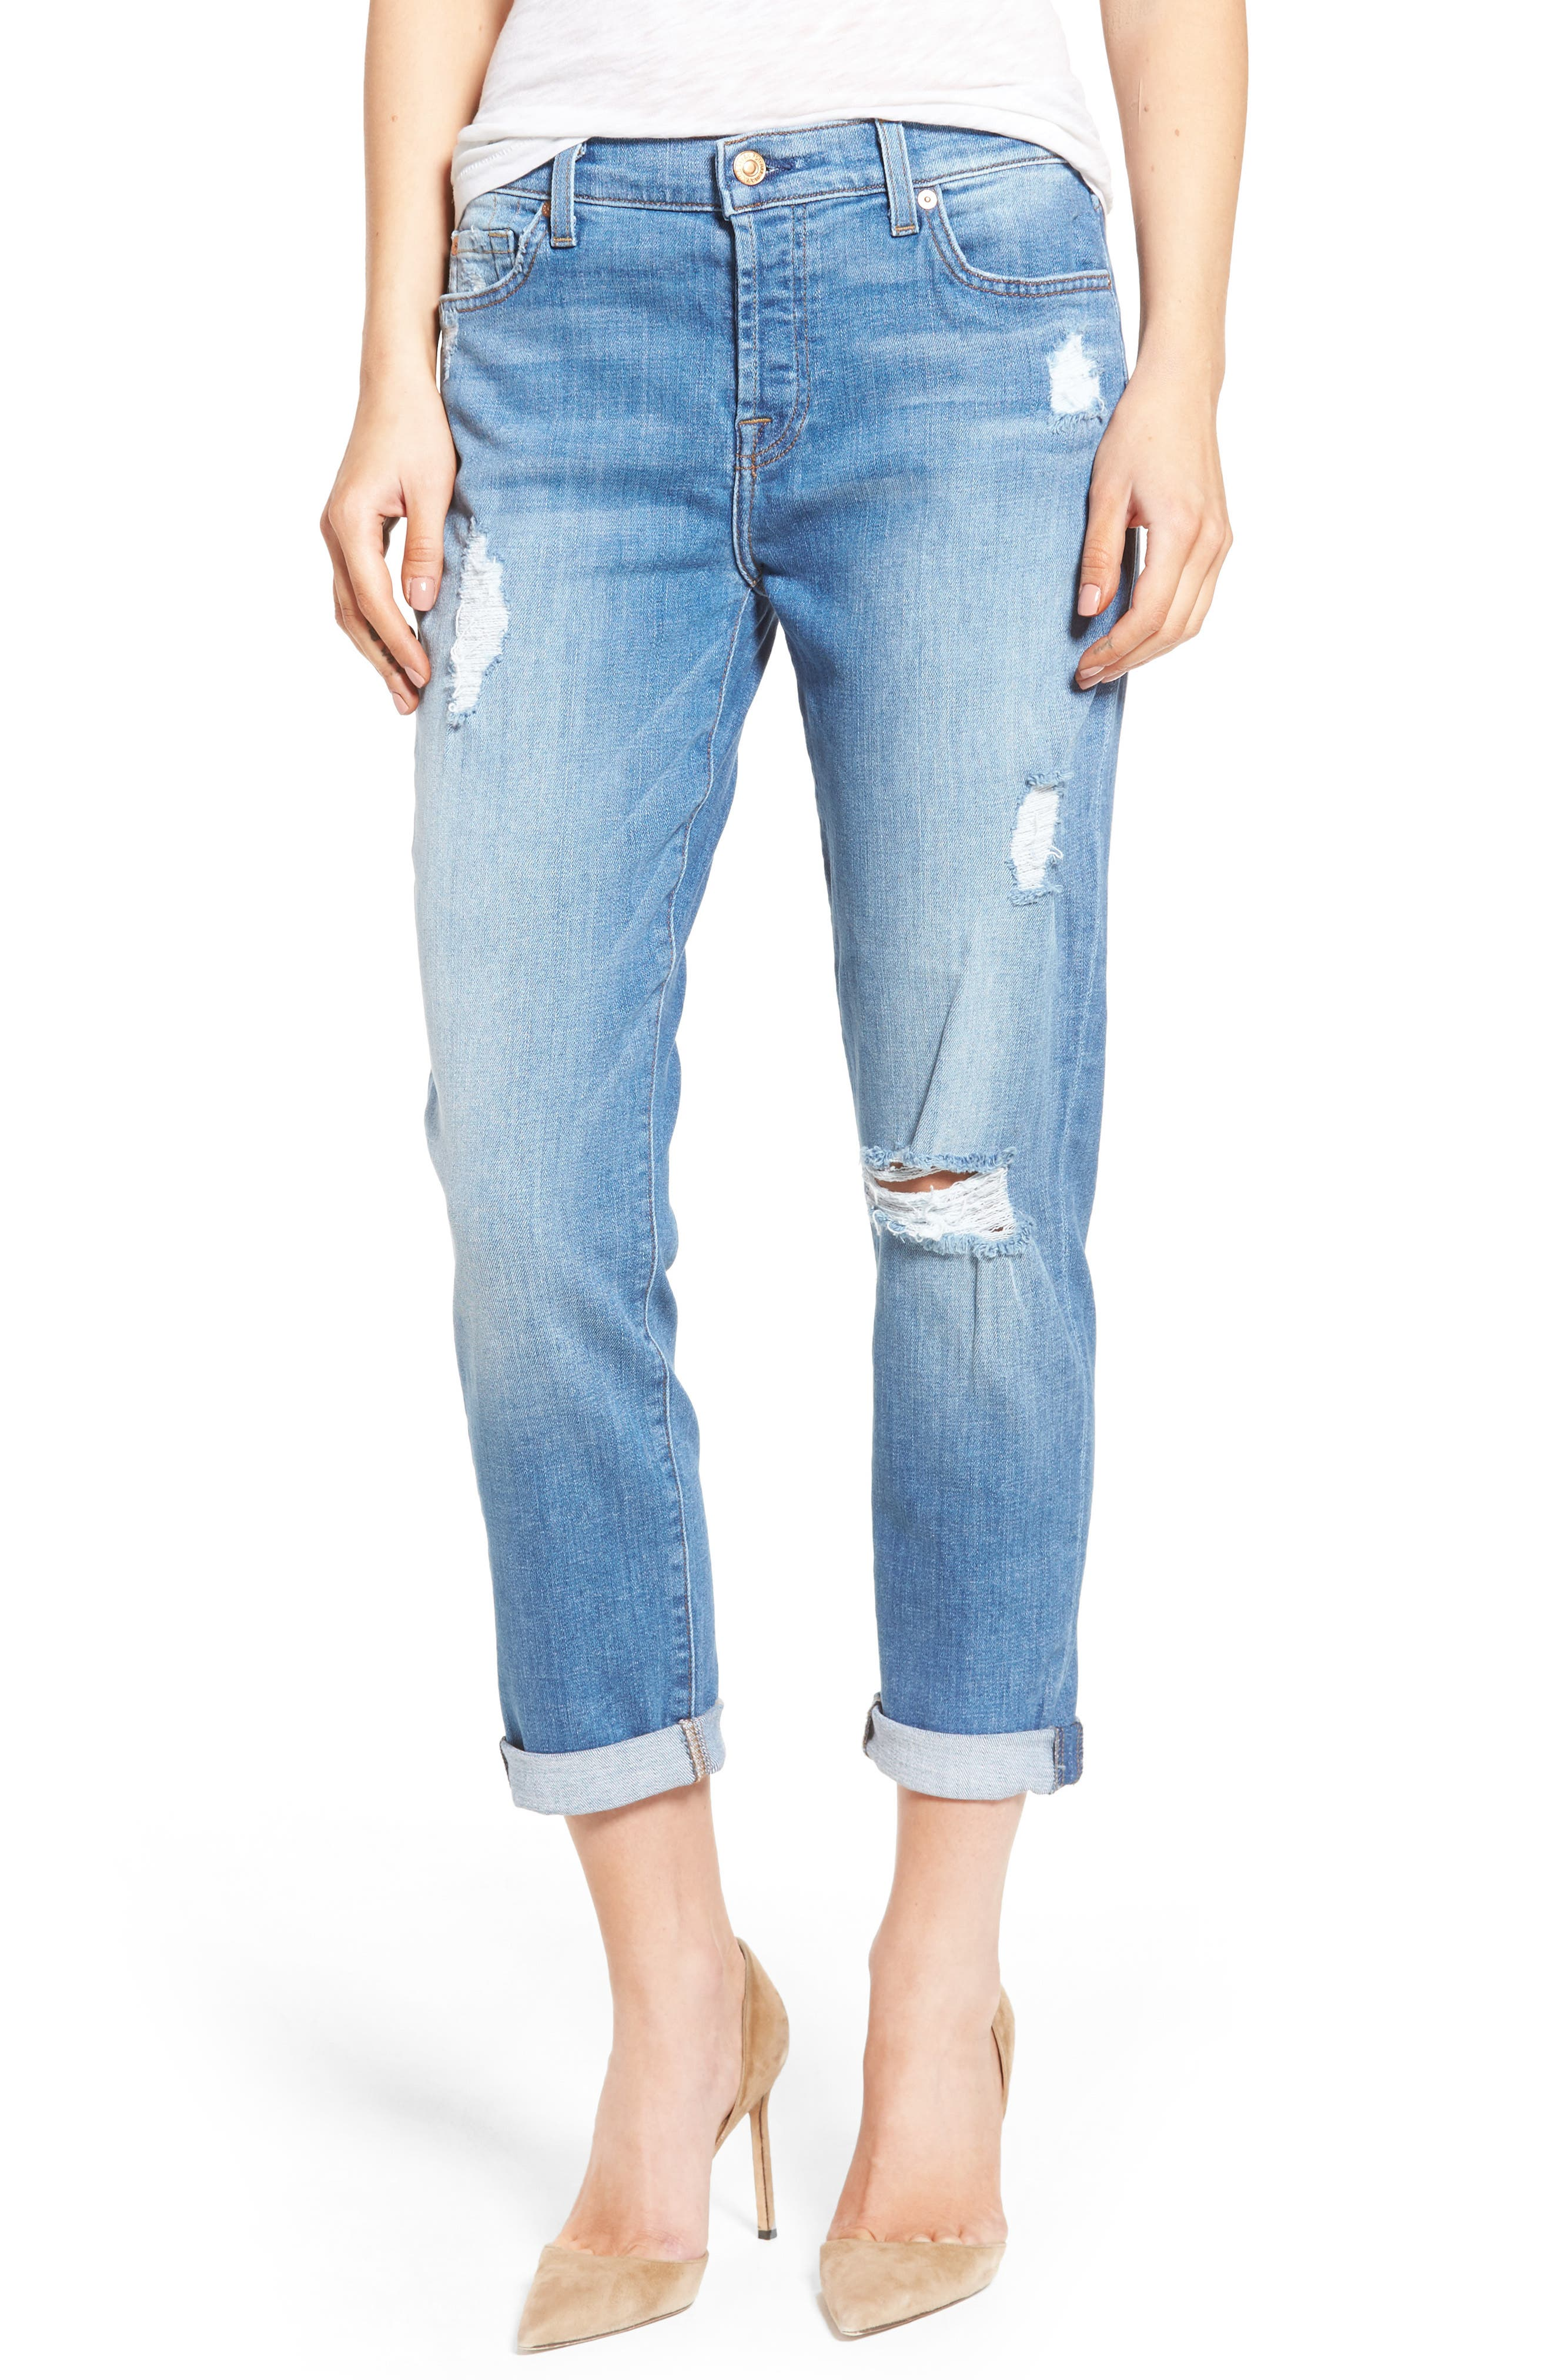 Alternate Image 1 Selected - 7 For All Mankind® 'Josefina' Mid Rise Boyfriend Jeans (Adelaide Bright Blue 2)